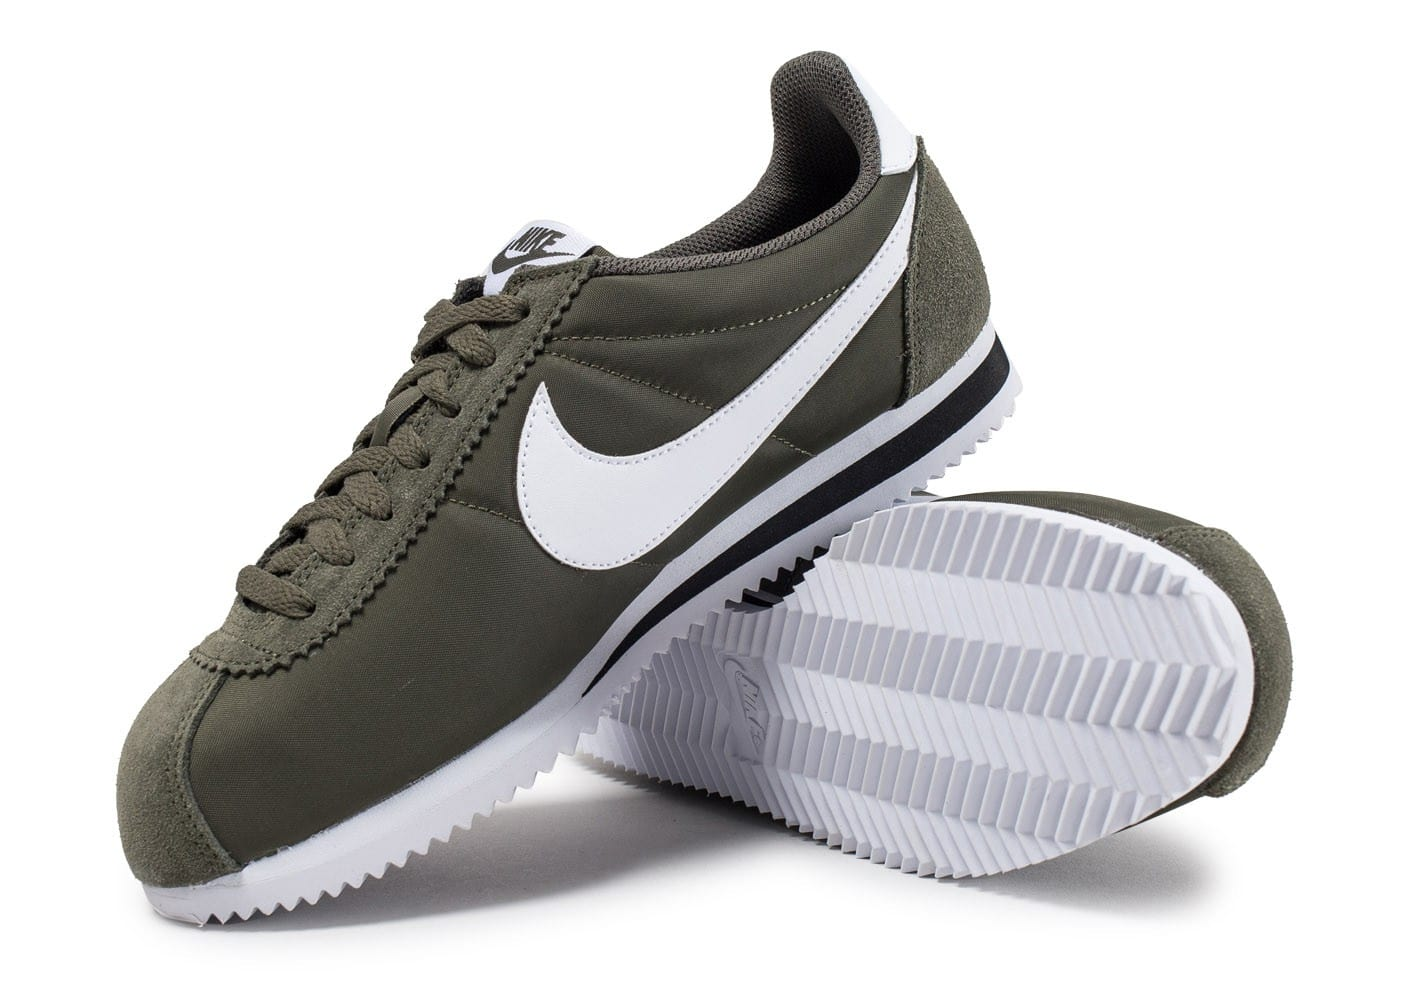 nike classic cortez nylon kaki cargo chaussures baskets homme chausport. Black Bedroom Furniture Sets. Home Design Ideas